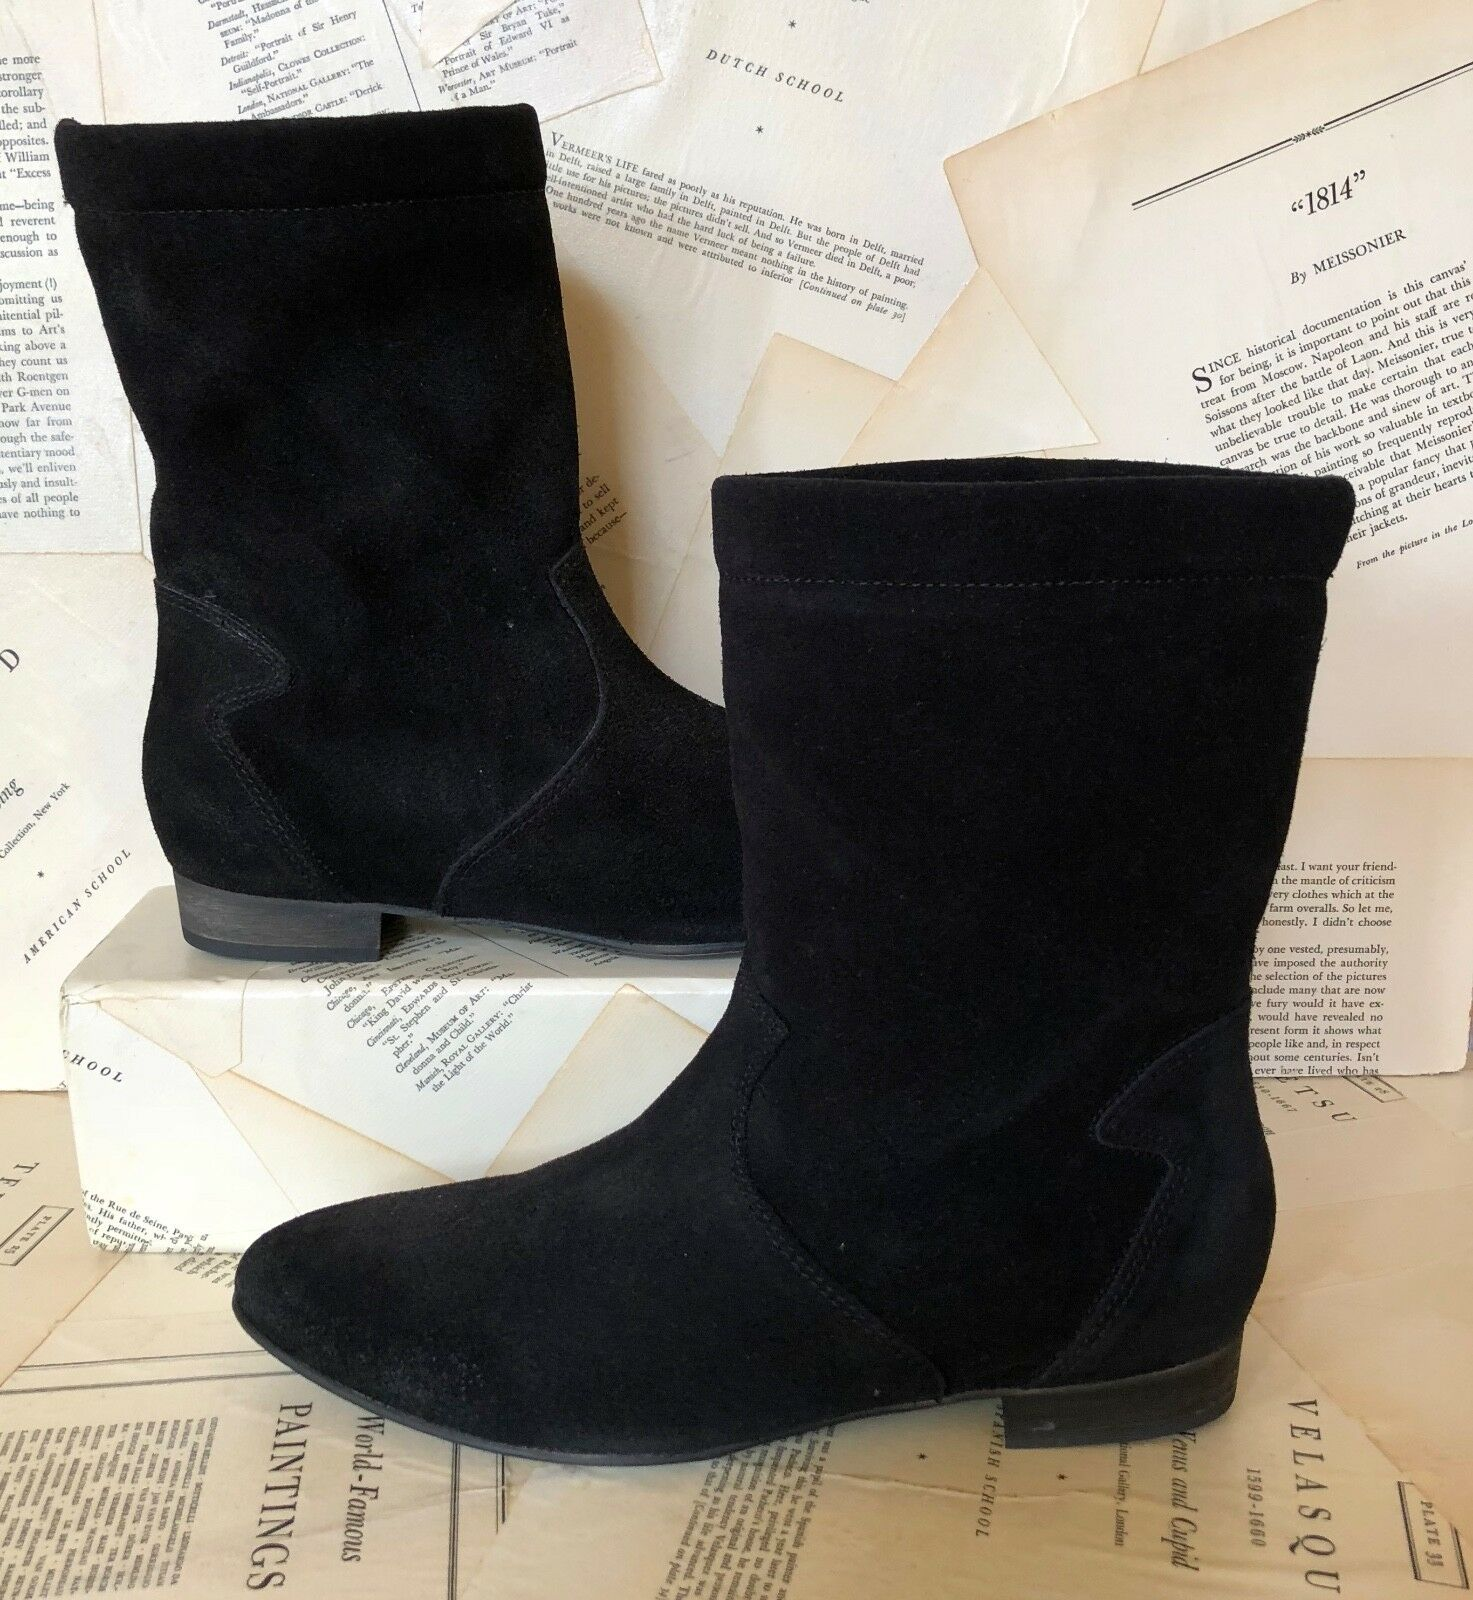 NEW Free People black Suede Pull On Slouchy Flat Pointy Toe Ankle Boots 38/7.5-8